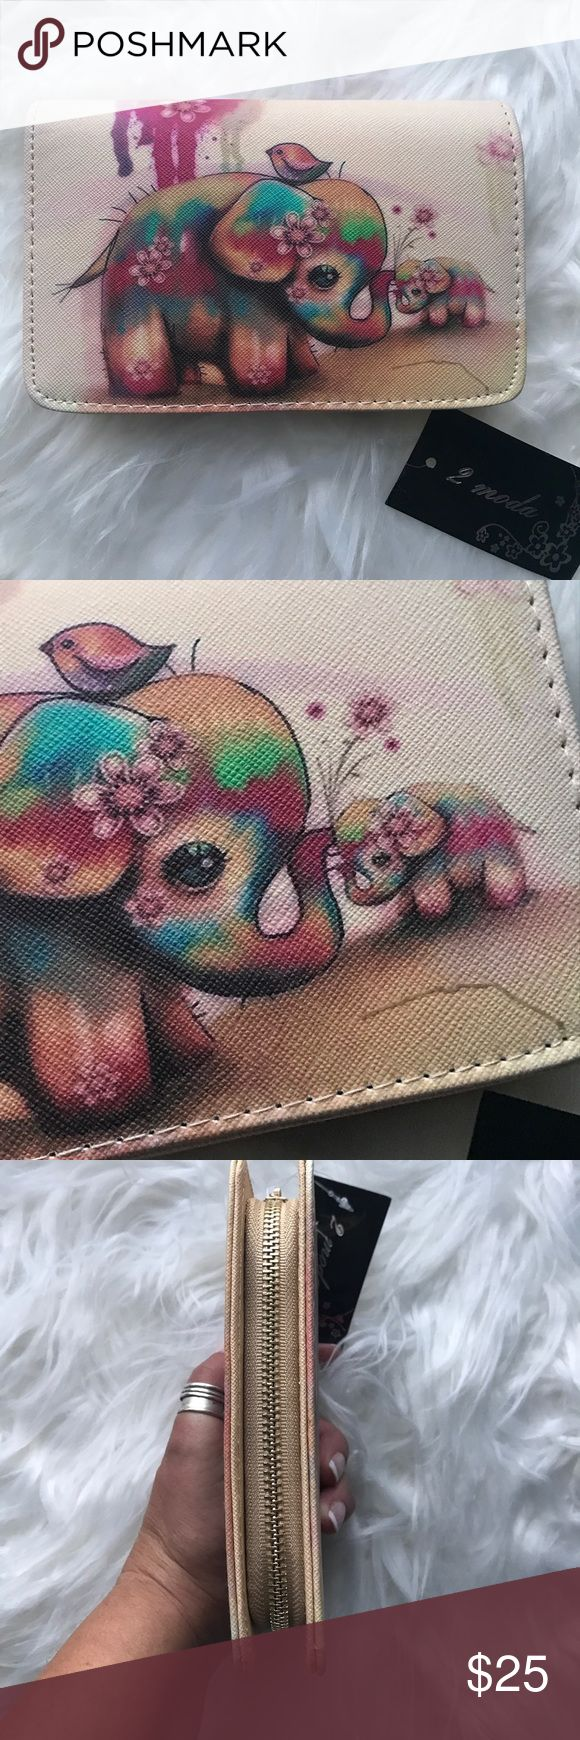 NWT 2 Moda elephant and baby watercolor wallet SO cute! 2 Moda watercolor wallet. Momma and baby elephant. Wallet clutch style. Synthetic materials. 2 Moda Bags Clutches & Wristlets